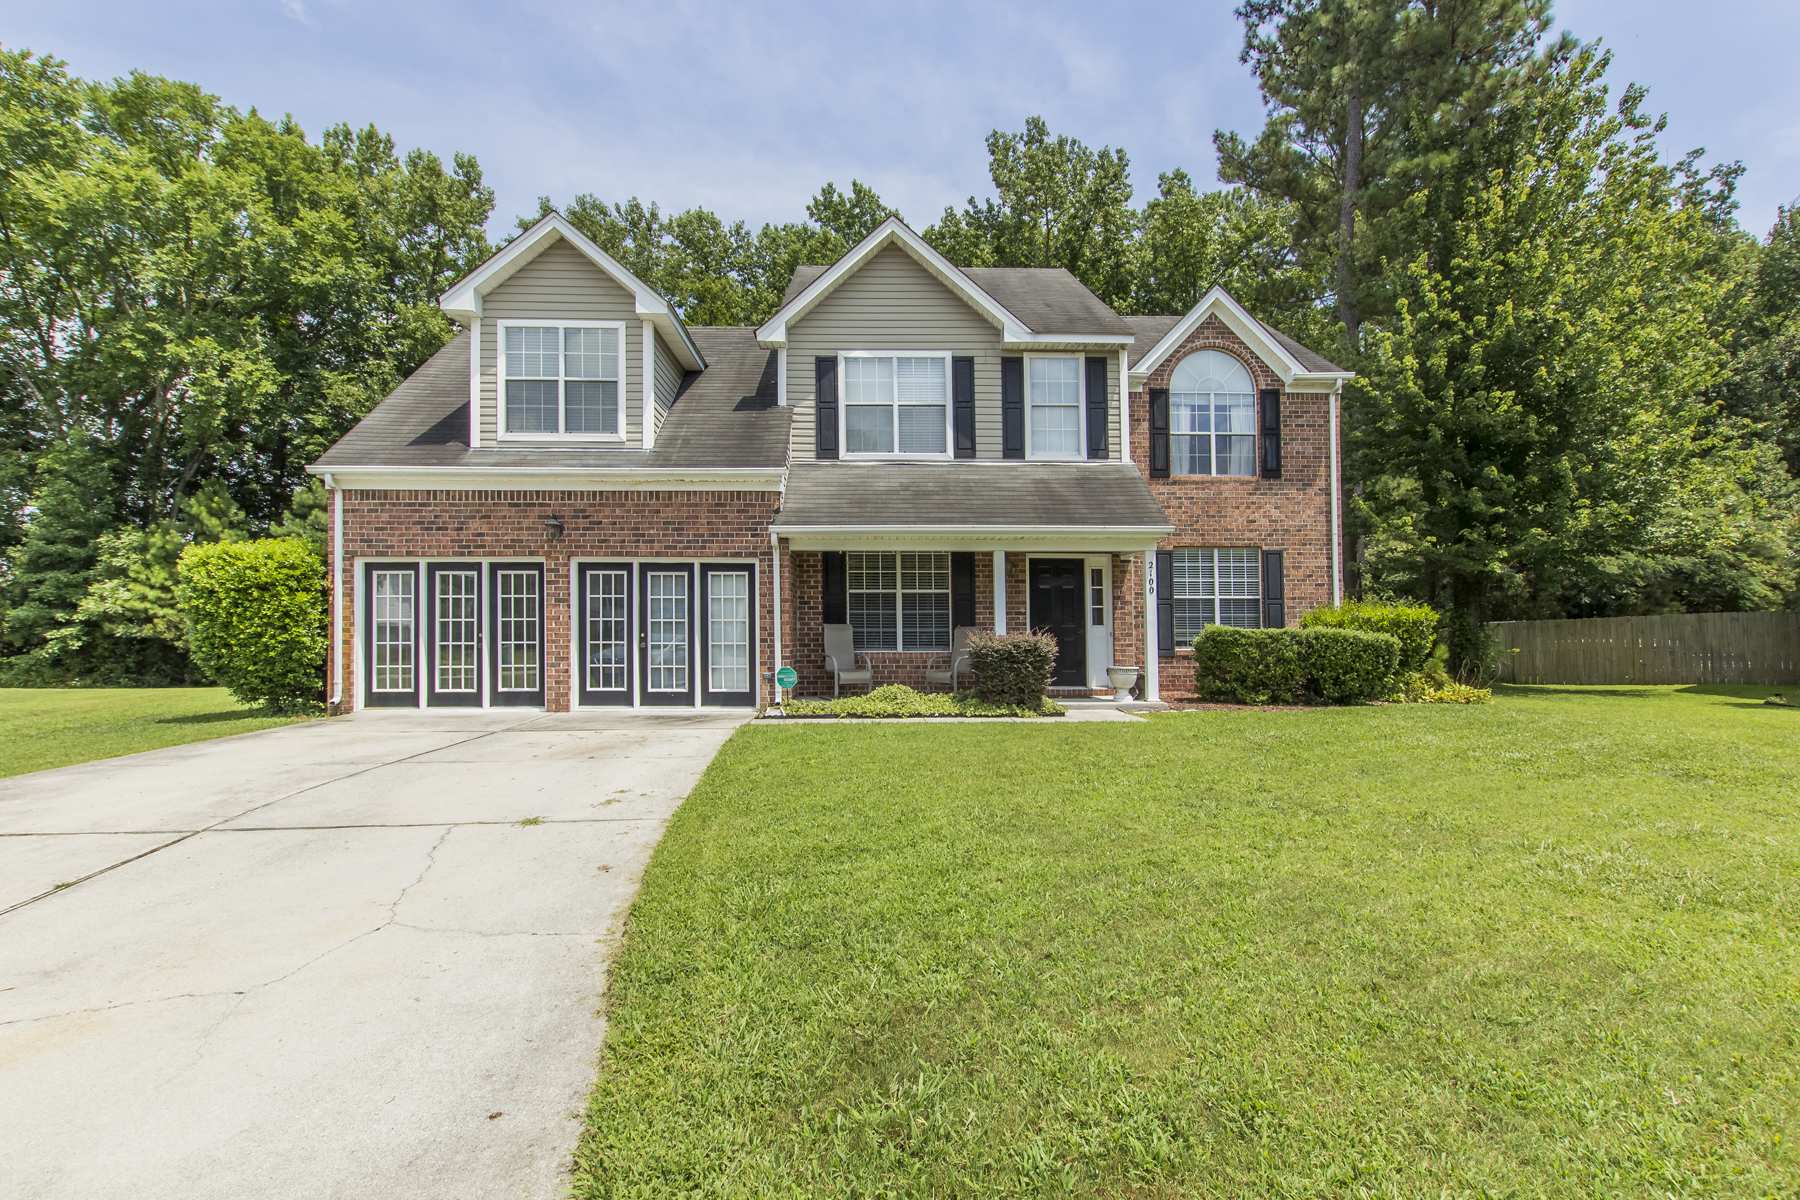 Single Family Home for Sale at Ship's Crossing 2100 Marlin Court Chesapeake, Virginia 23323 United States